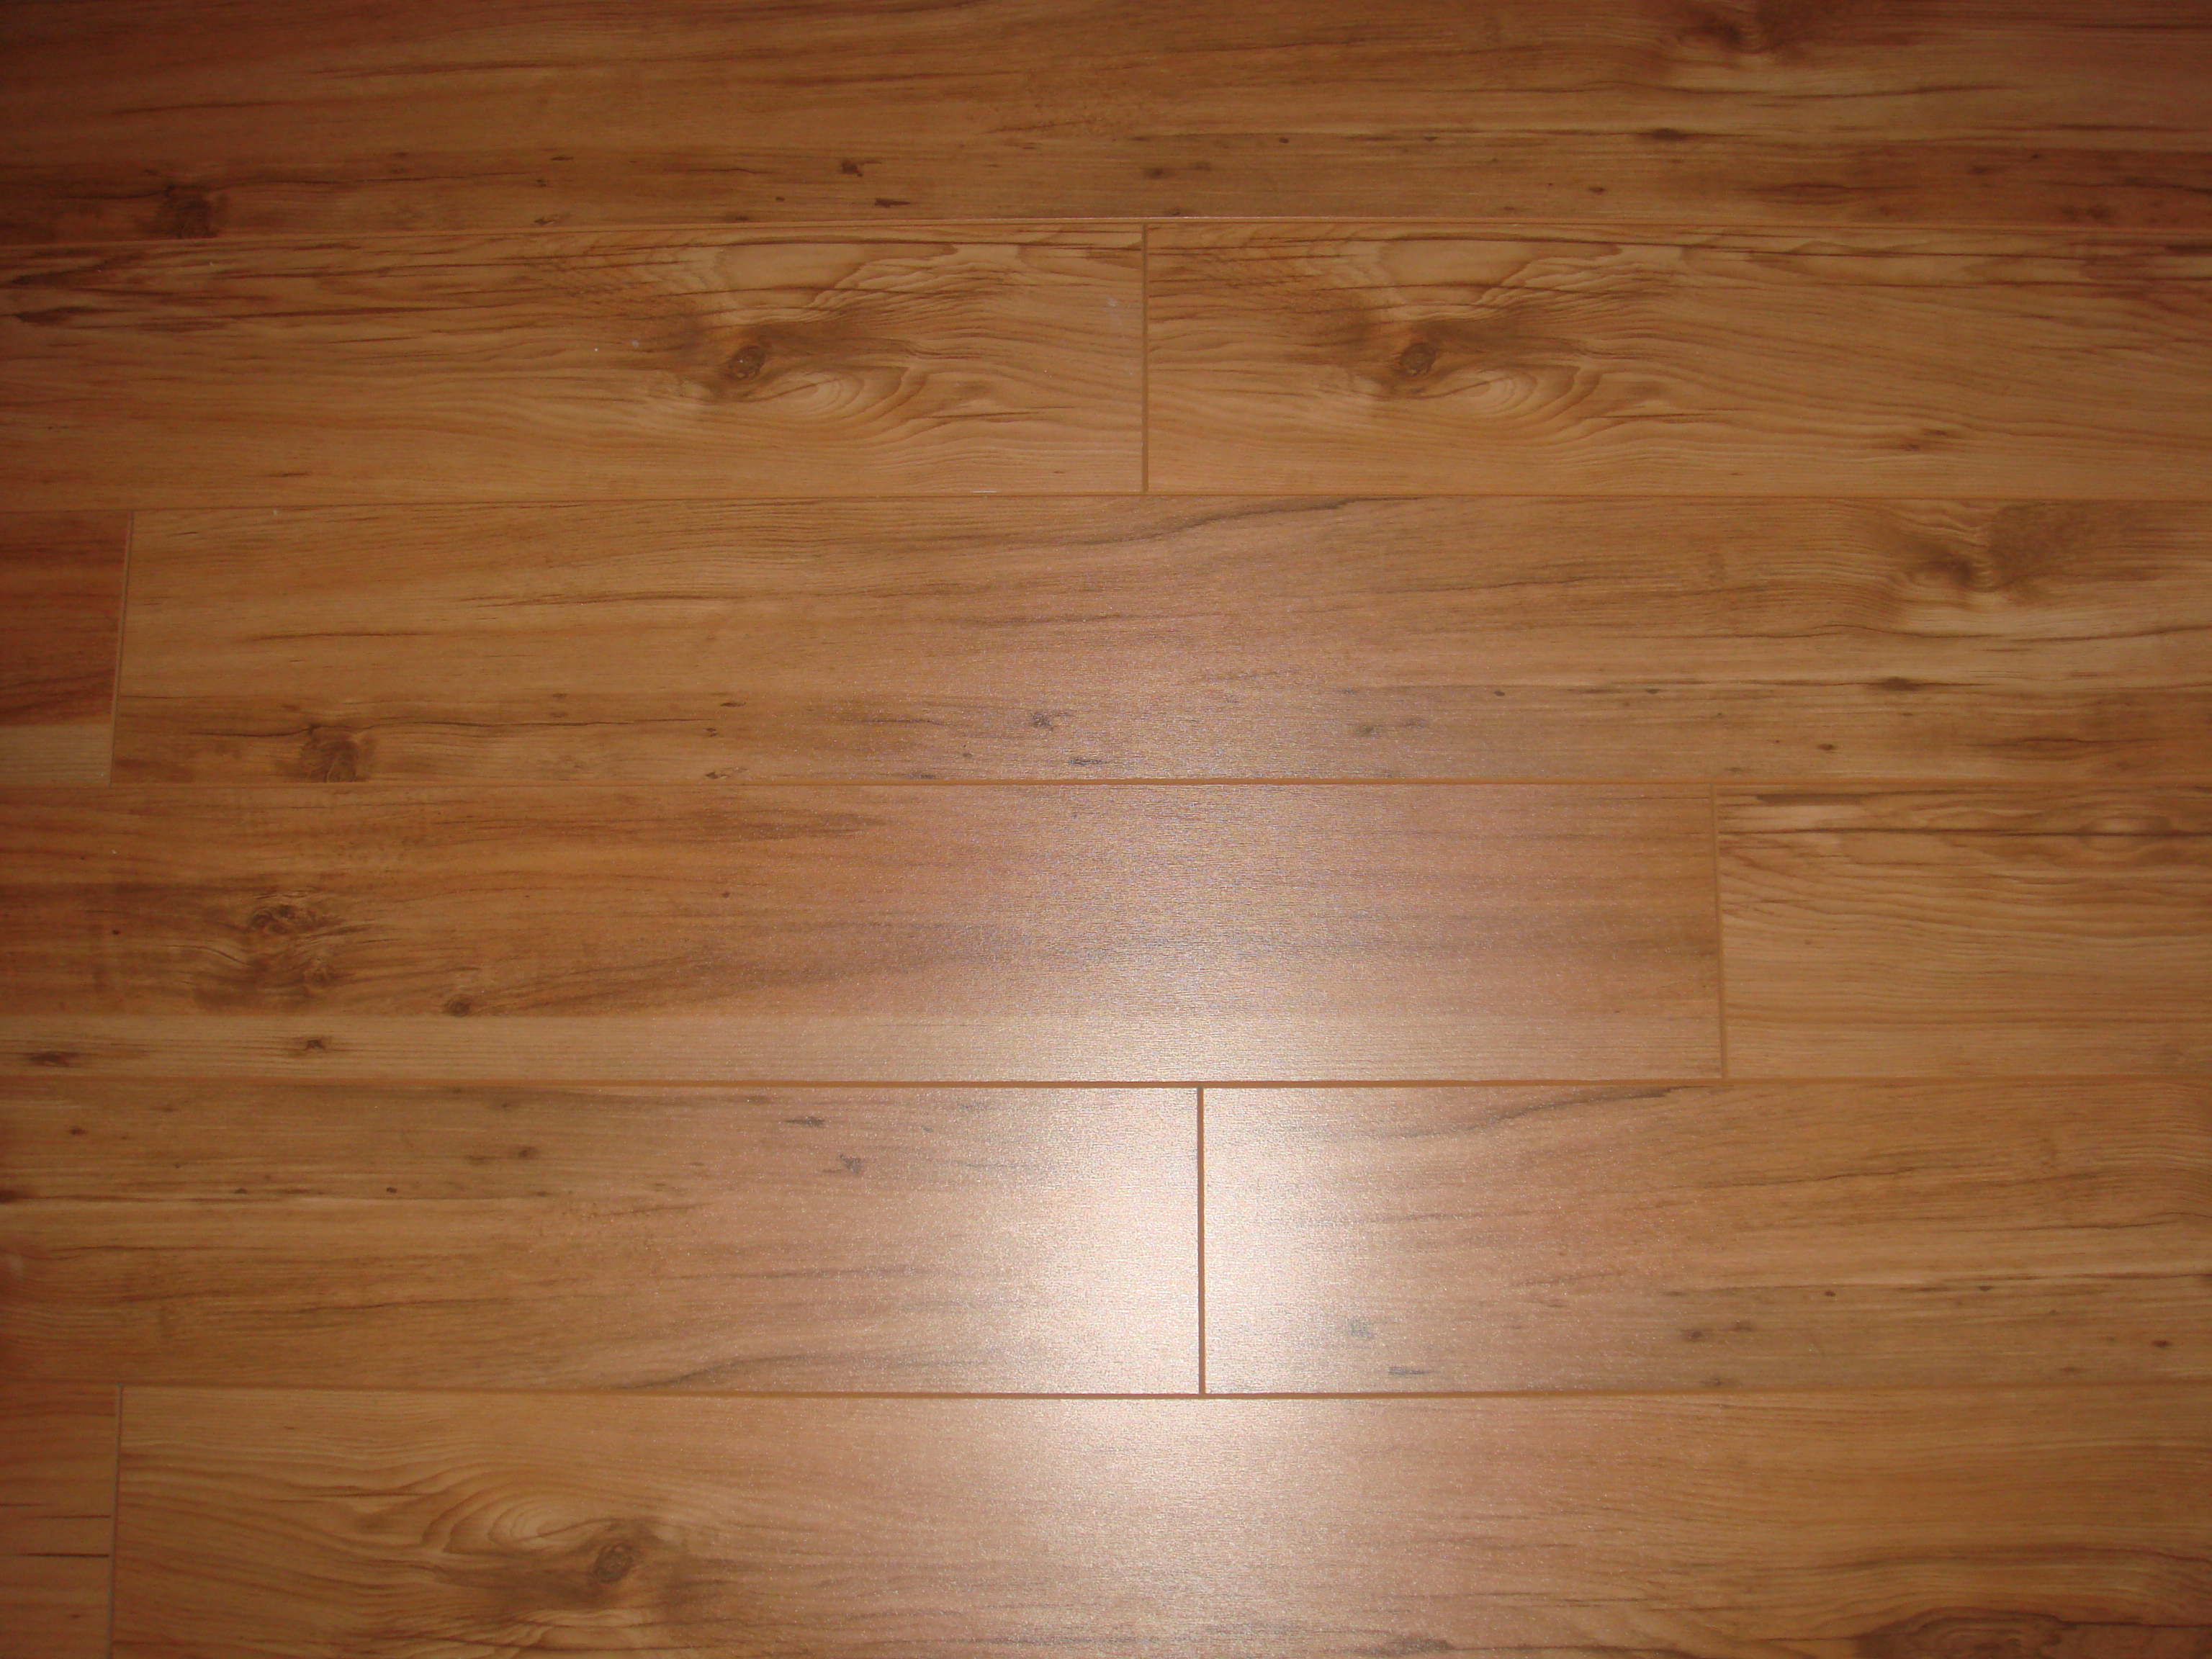 What Is Laminate Wood Flooring architecture designs flooring laminate flooring wood Best Laminate Wood Flooring